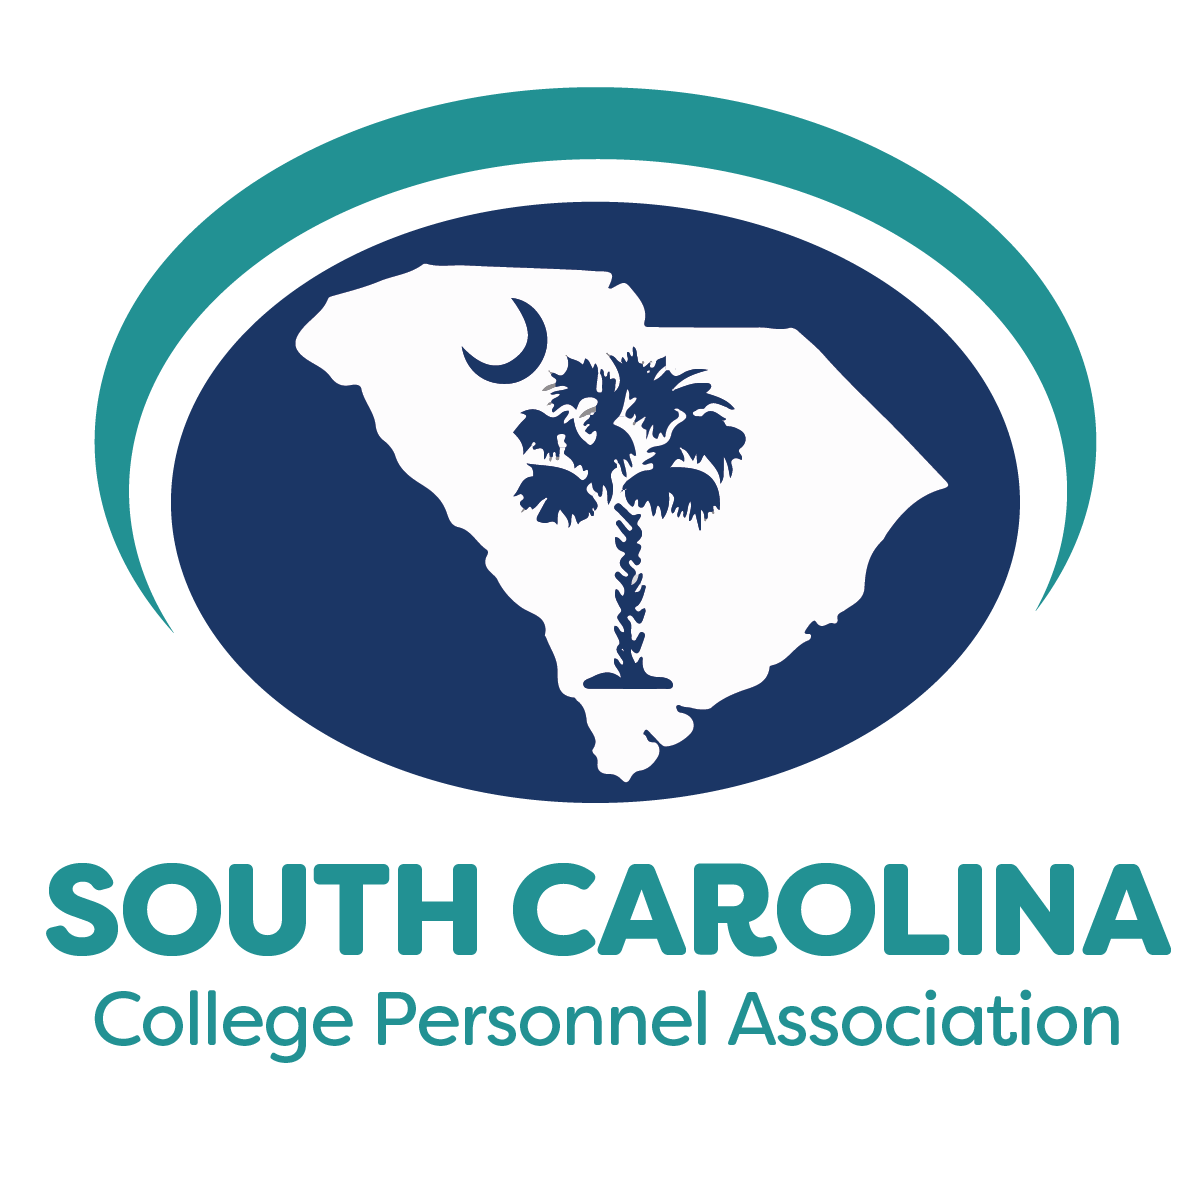 South Carolina College Personnel Association logo featuring a palmetto tree instead of the state outline